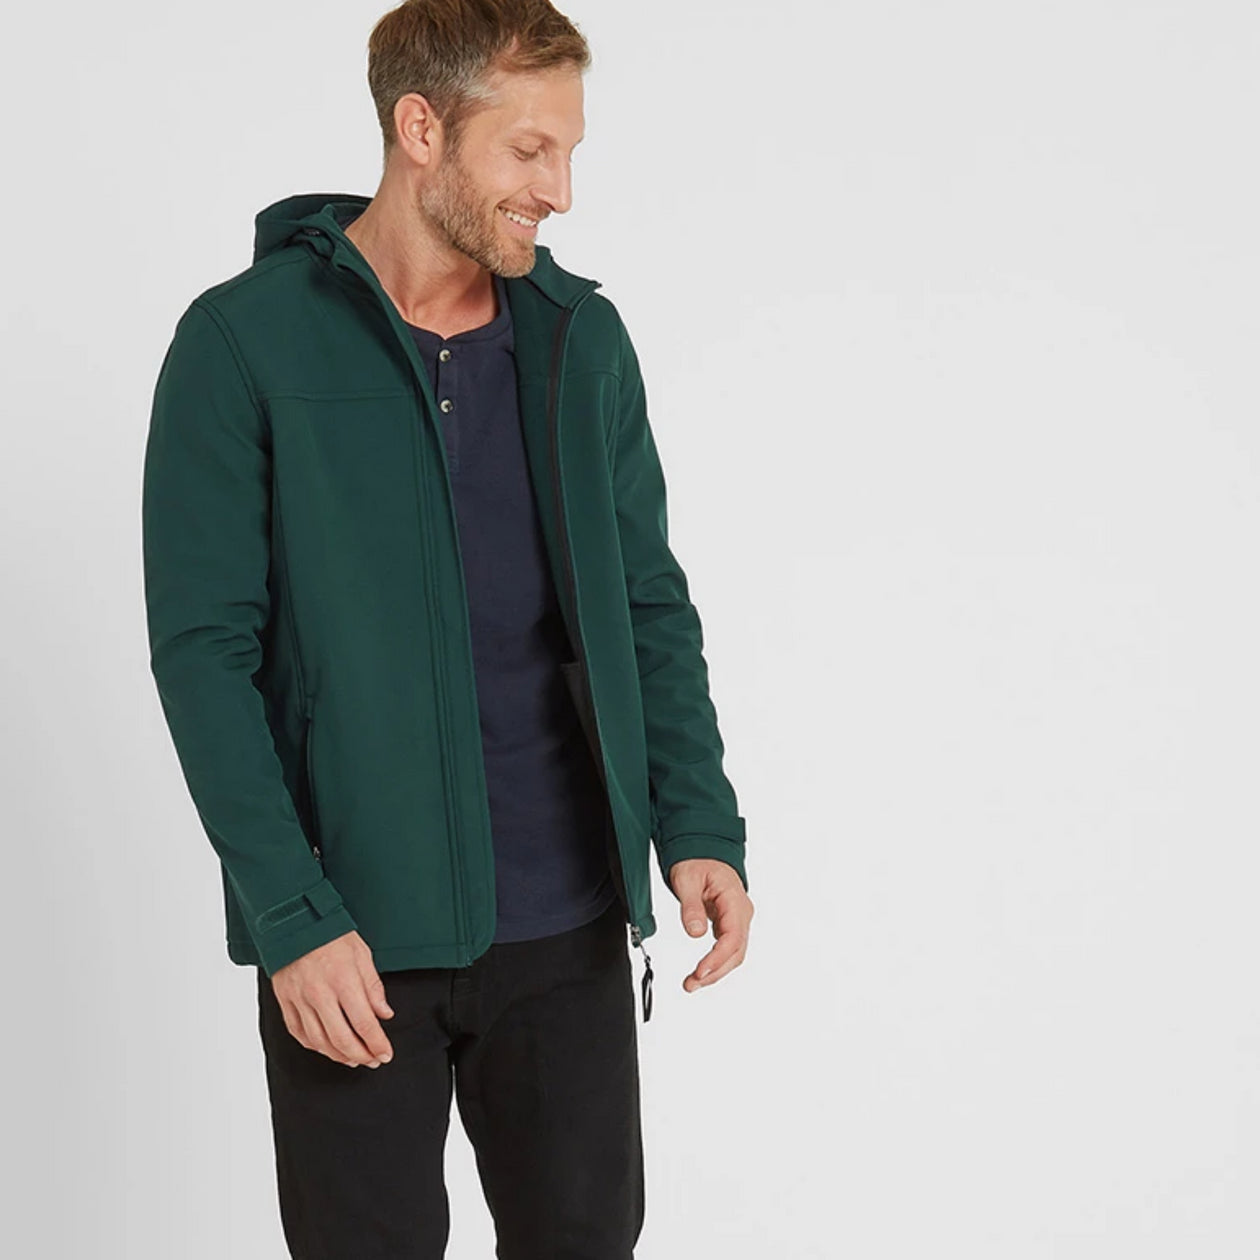 Feizor Mens Softshell Hooded Jacket - Forest image 4